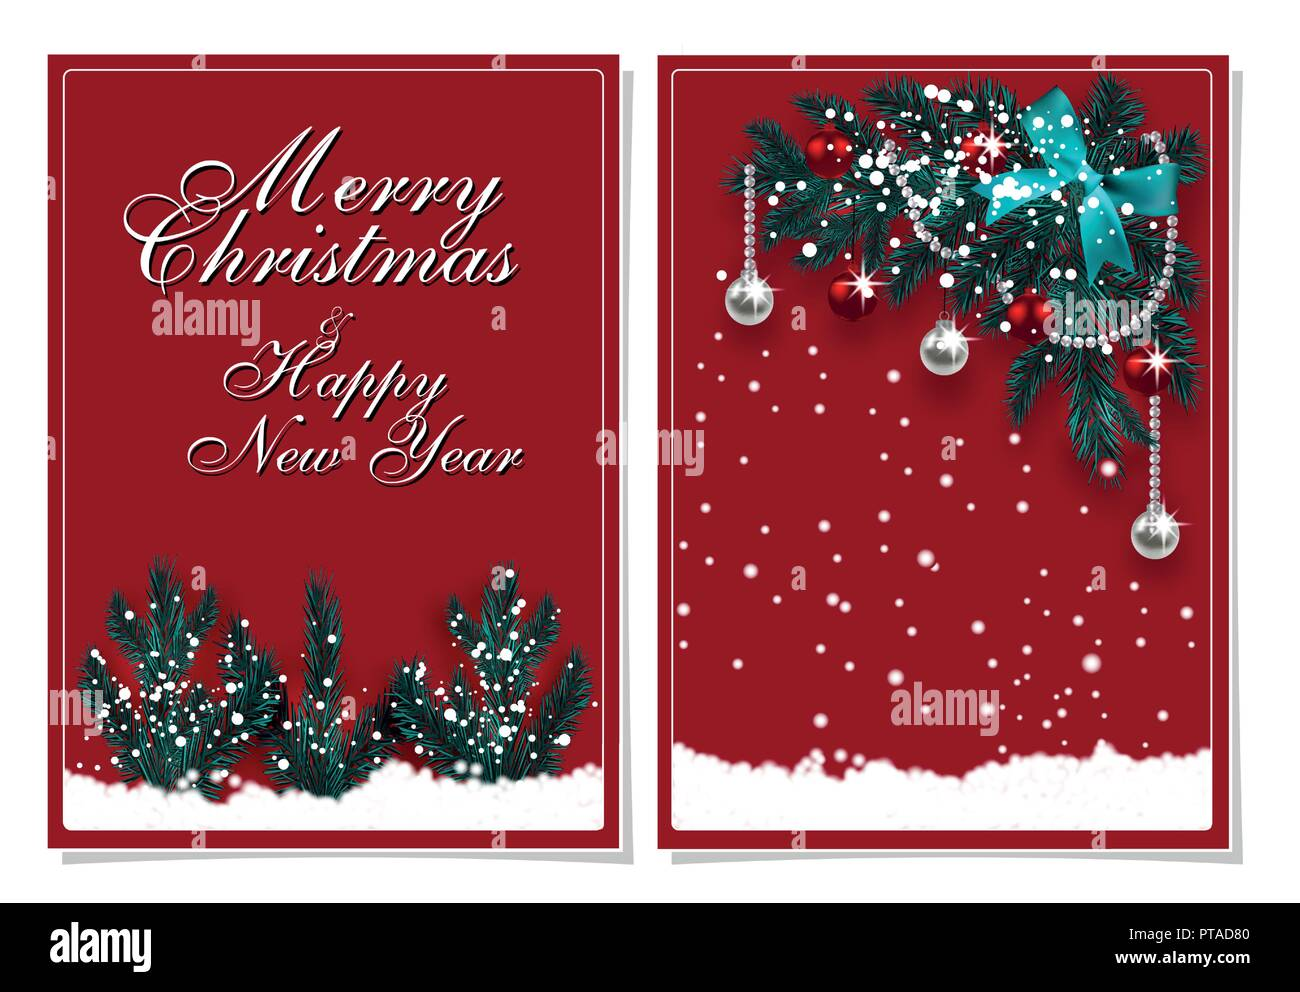 Merry Christmas And Happy New Year Greeting Card With Decorations